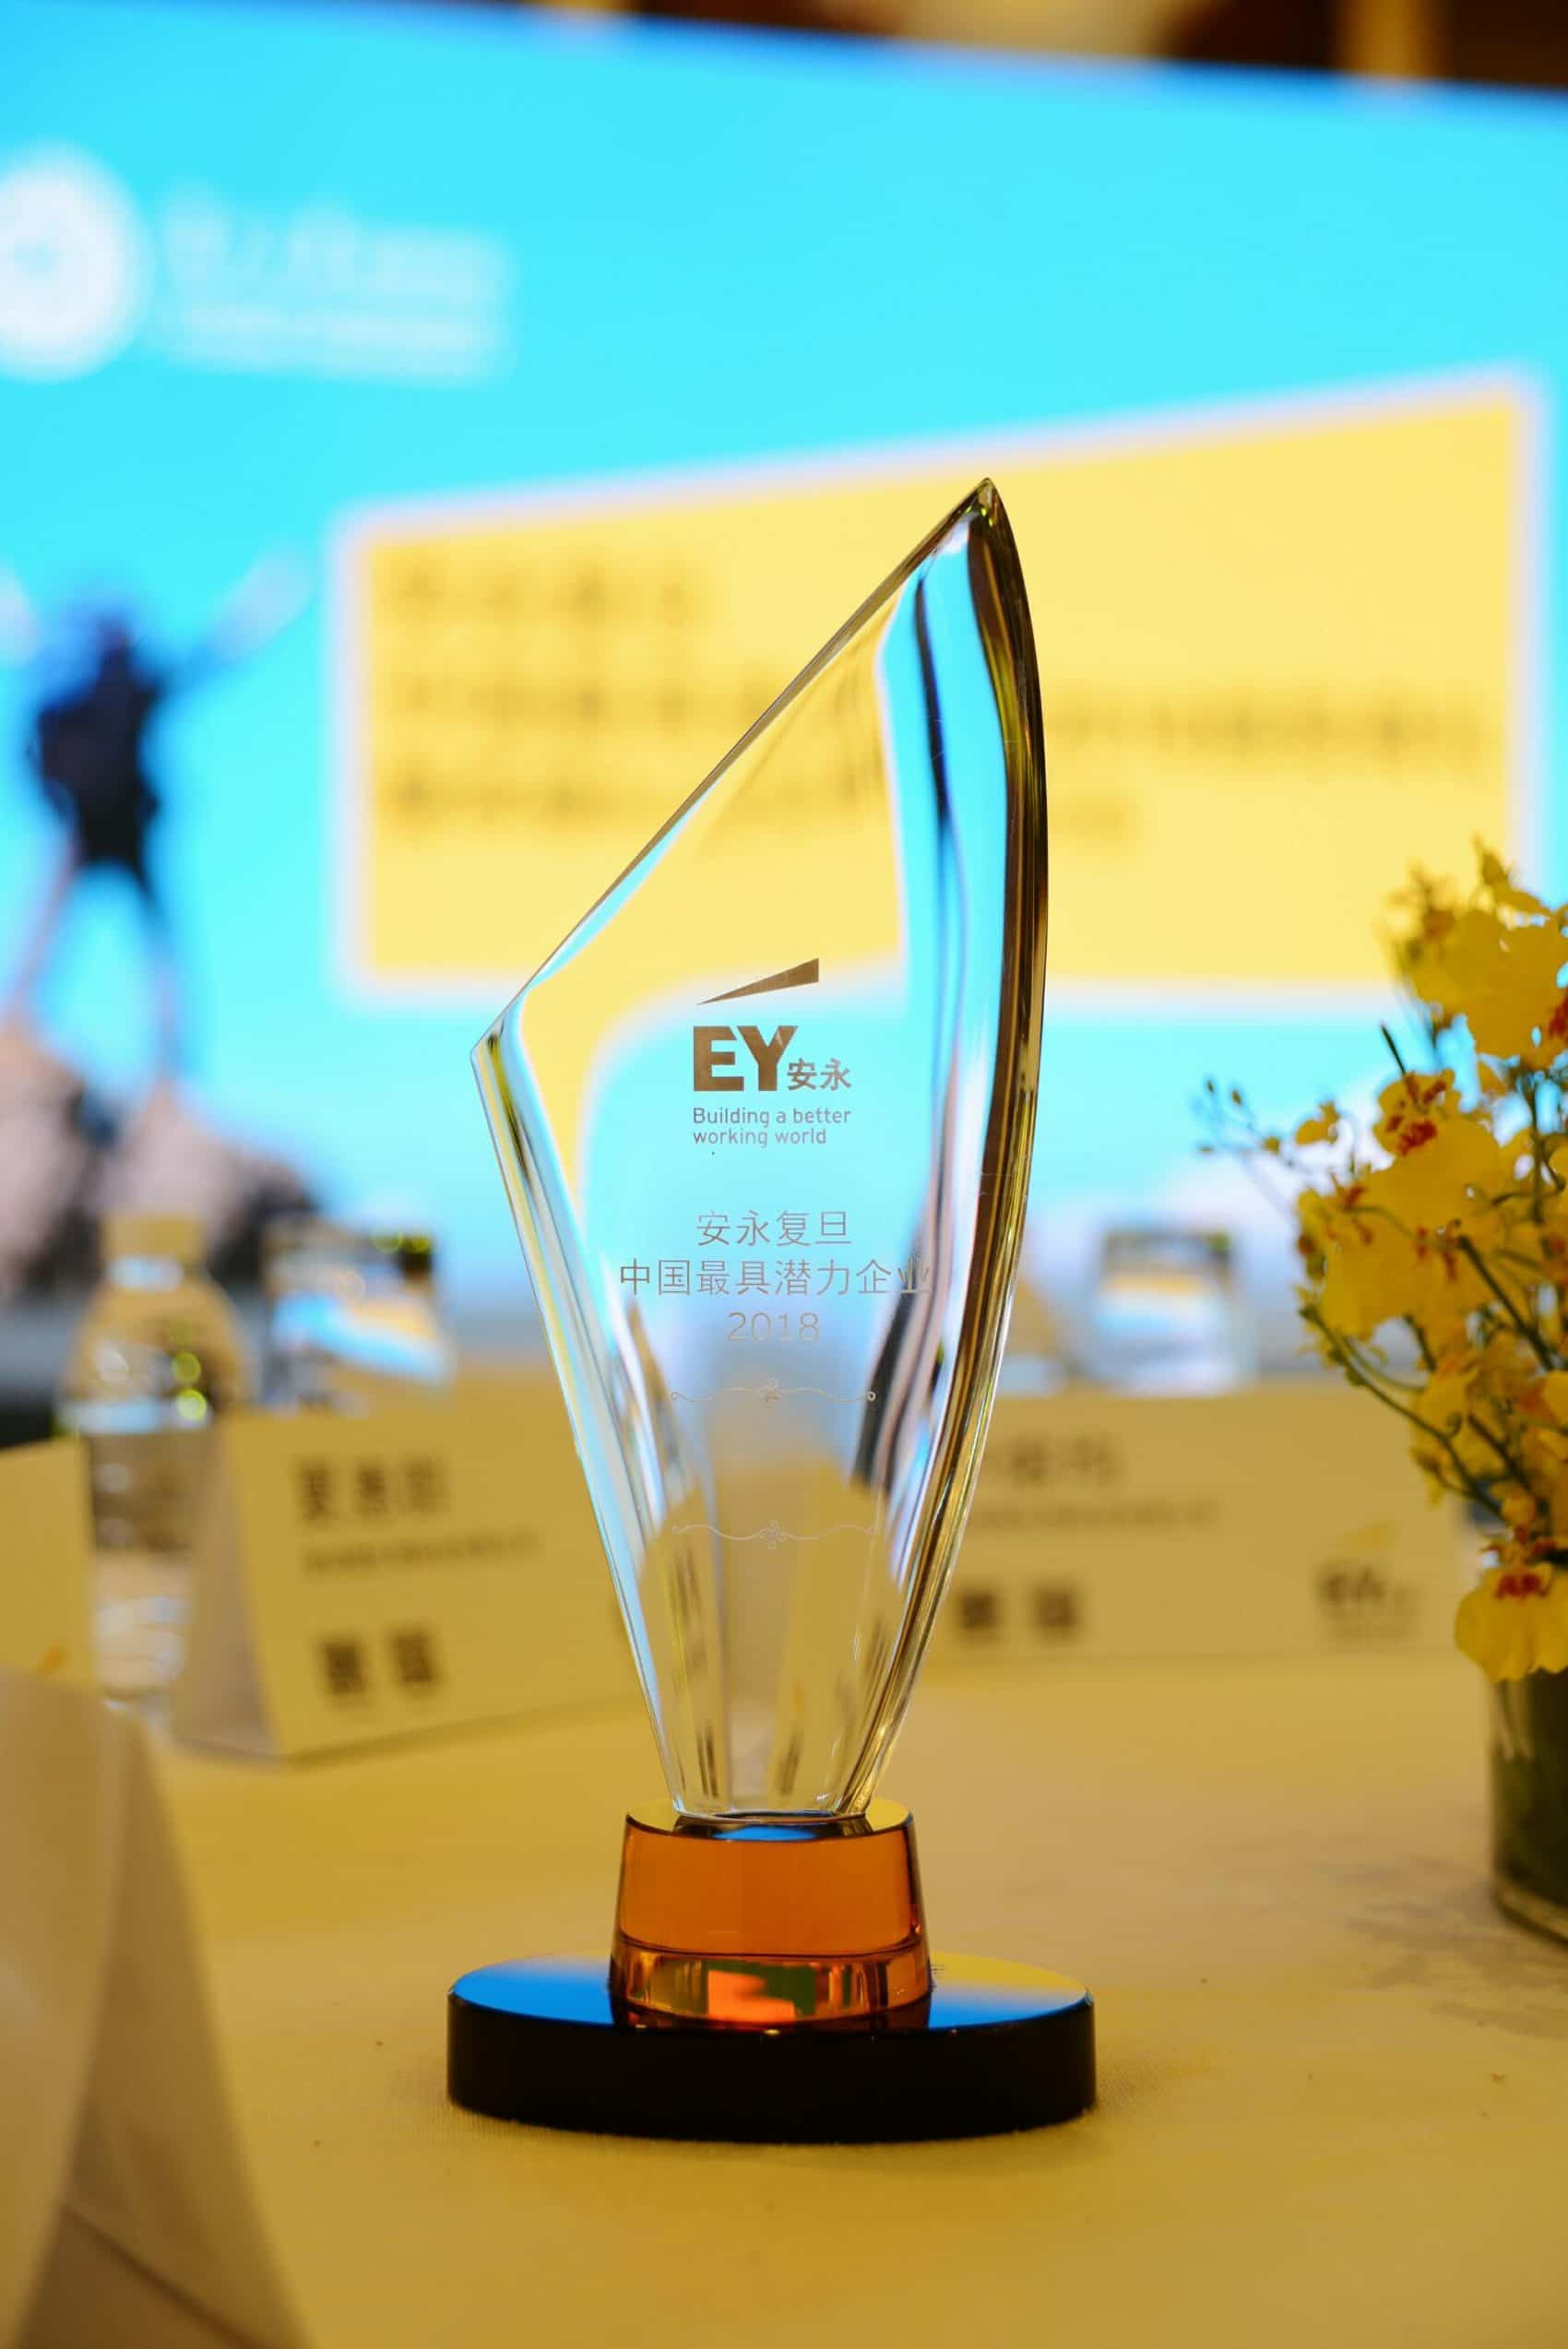 EY's 2018 Promising Company Award